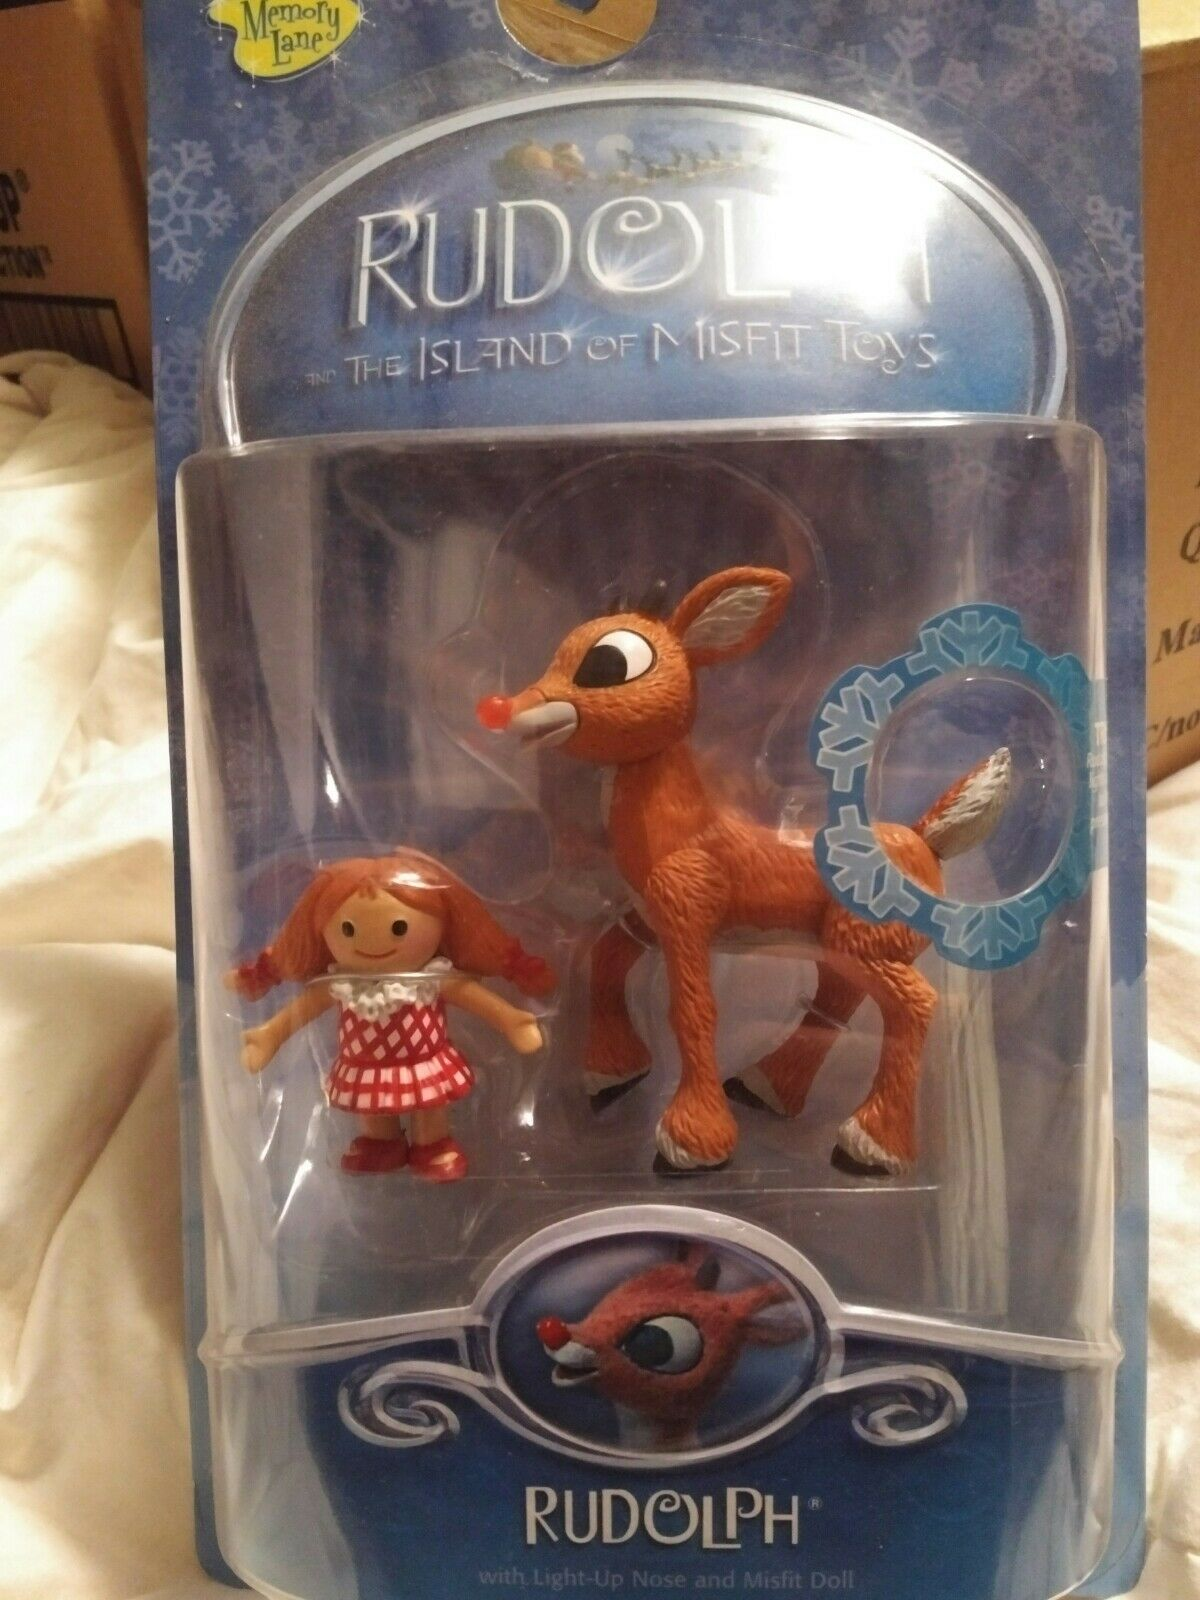 """MEMORY LANE """"Rudolph and Doll from Island of Misfit Toys"""" figures New 2002 Rare"""